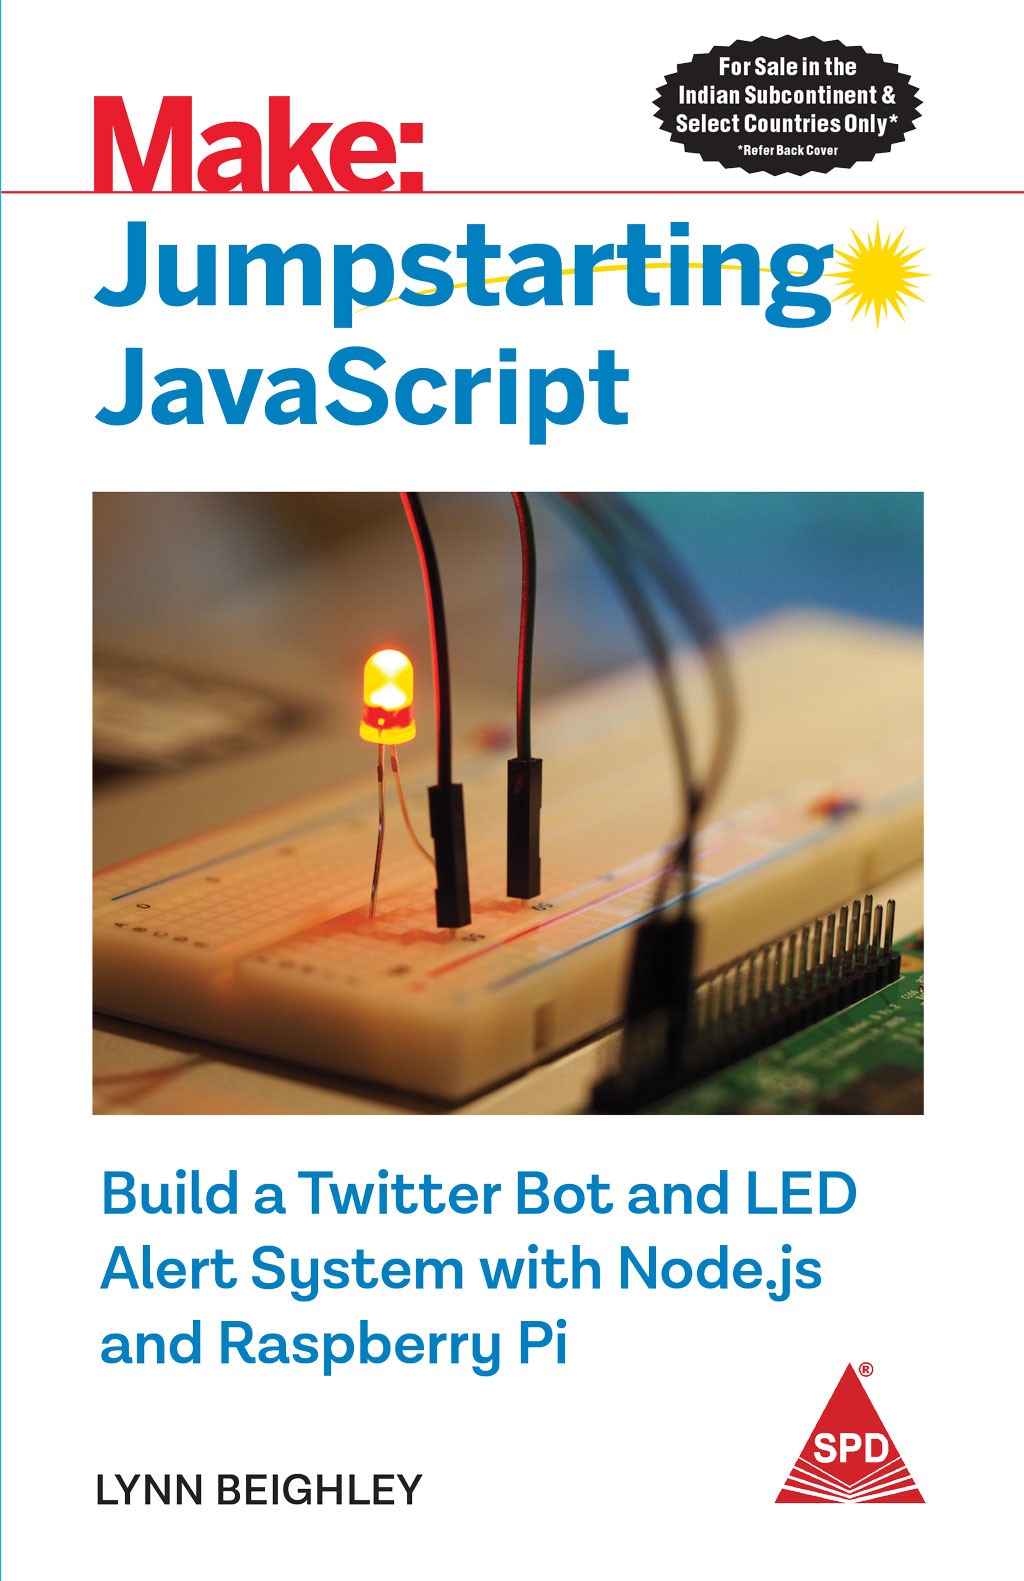 Make: Jumpstarting JavaScript - Build a Twitter Bot and LED Alert System  with Node js and Raspberry Pi (Grayscale edition)